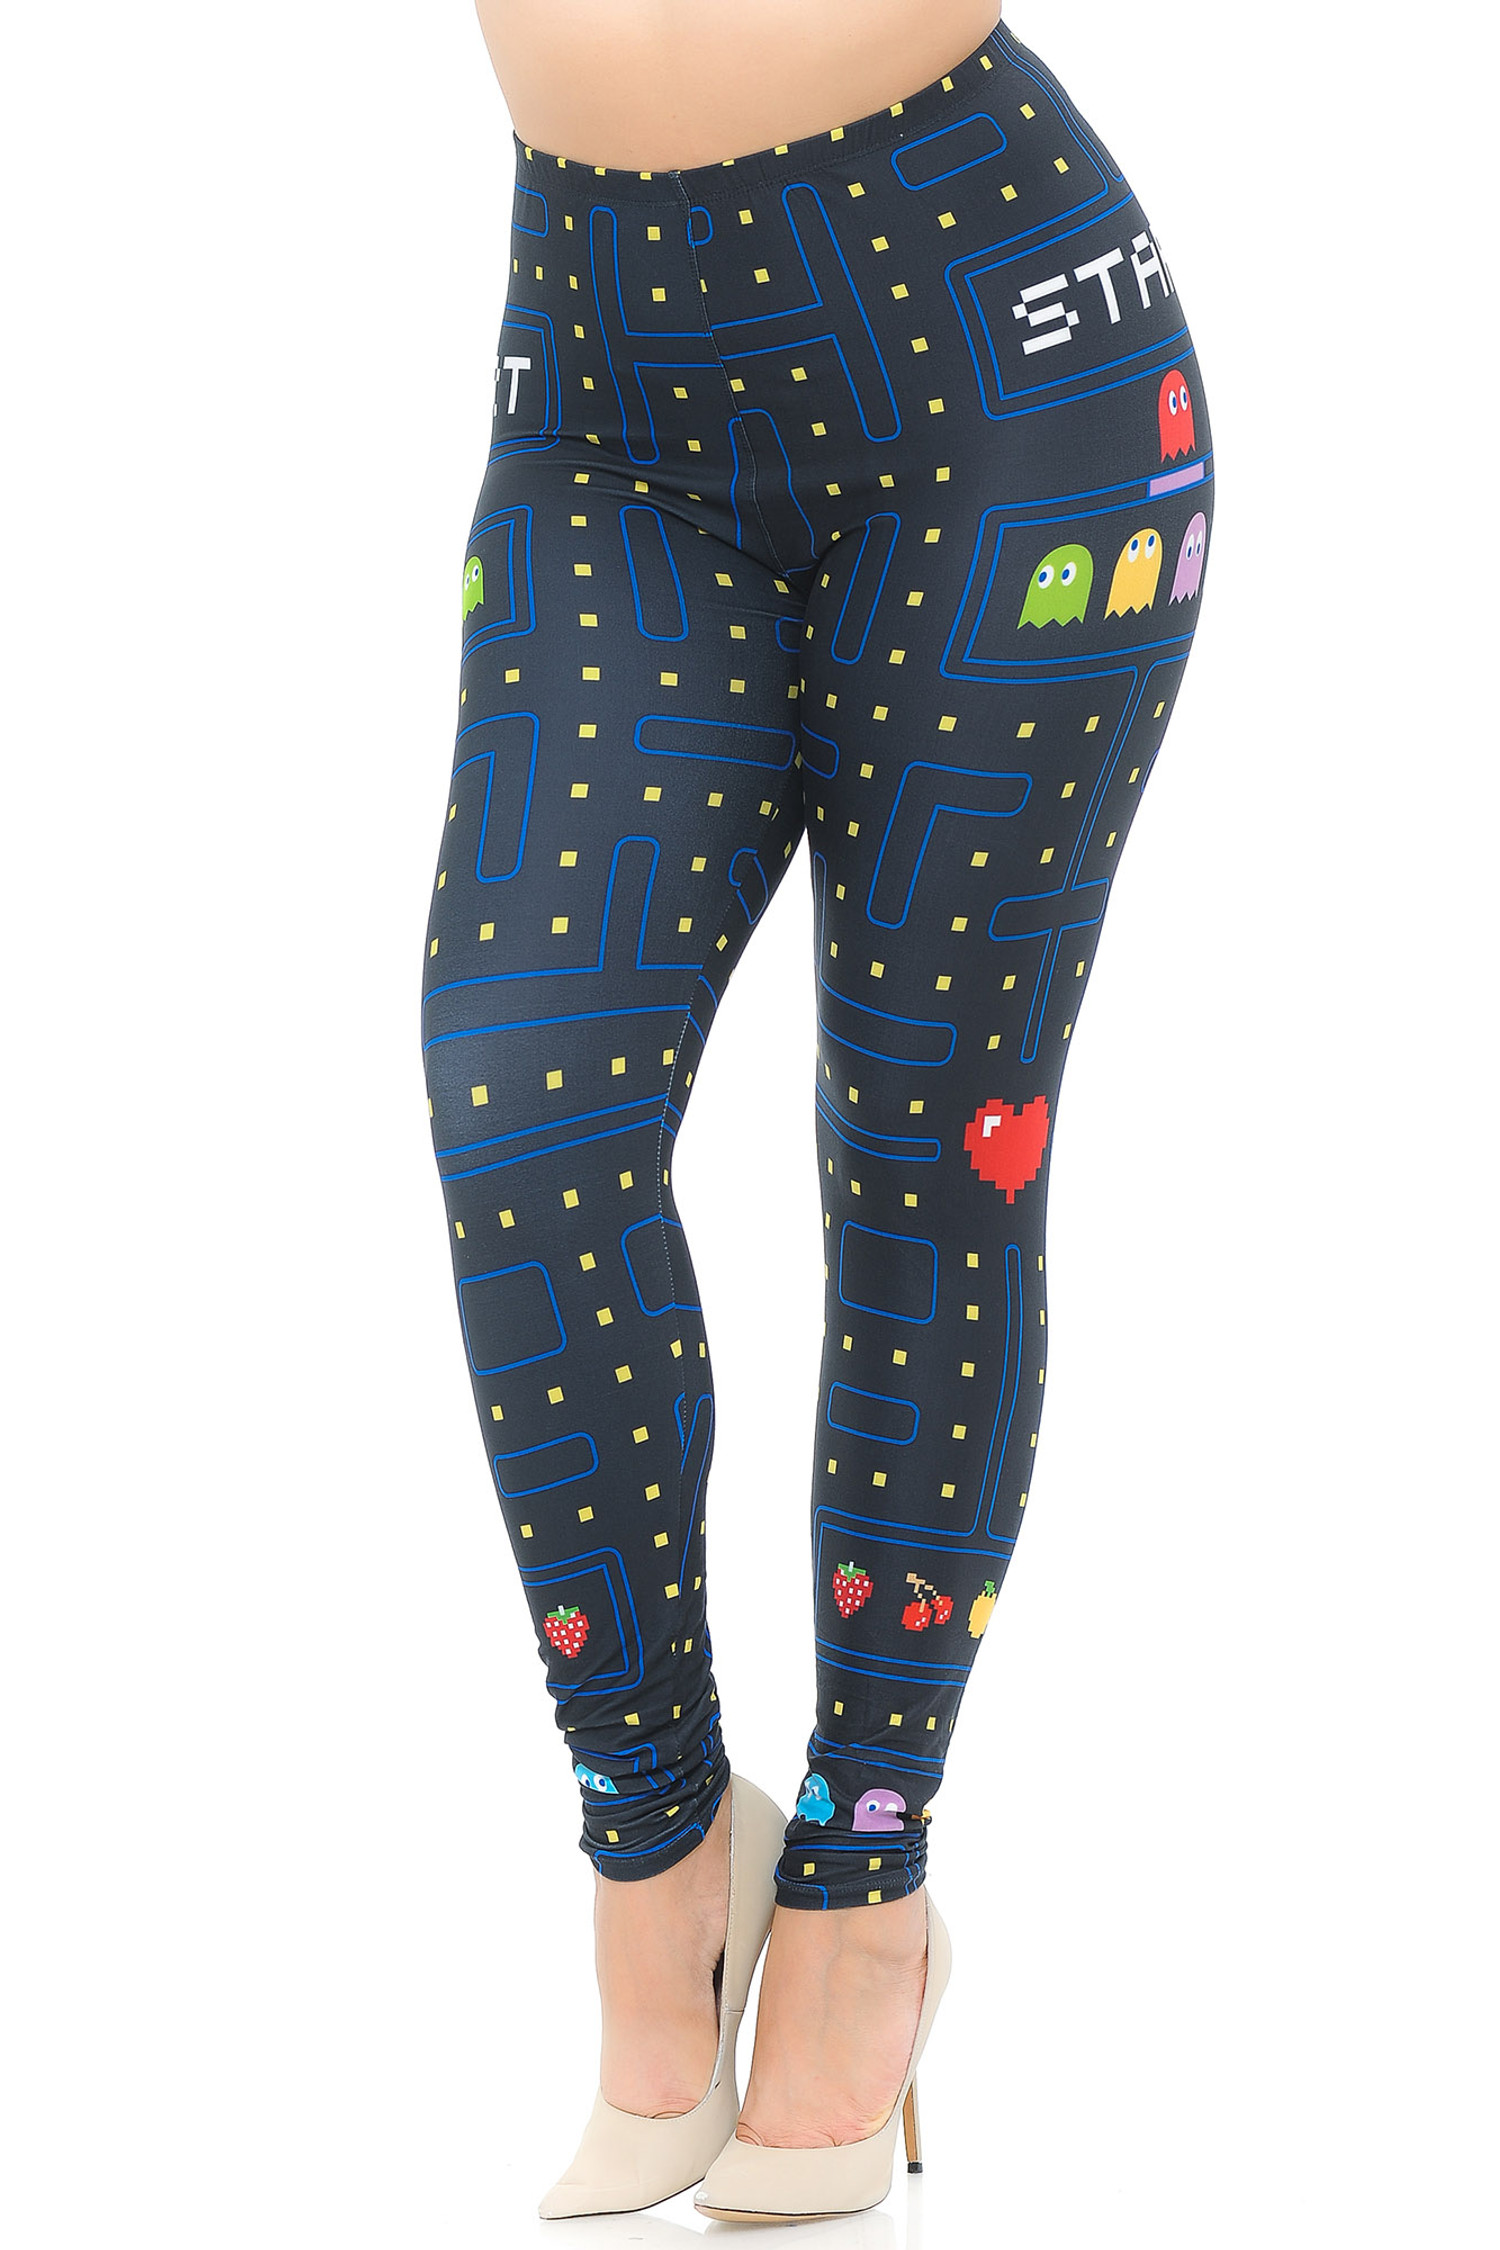 Creamy Soft Pacman Begins Plus Size Leggings - USA Fashion™